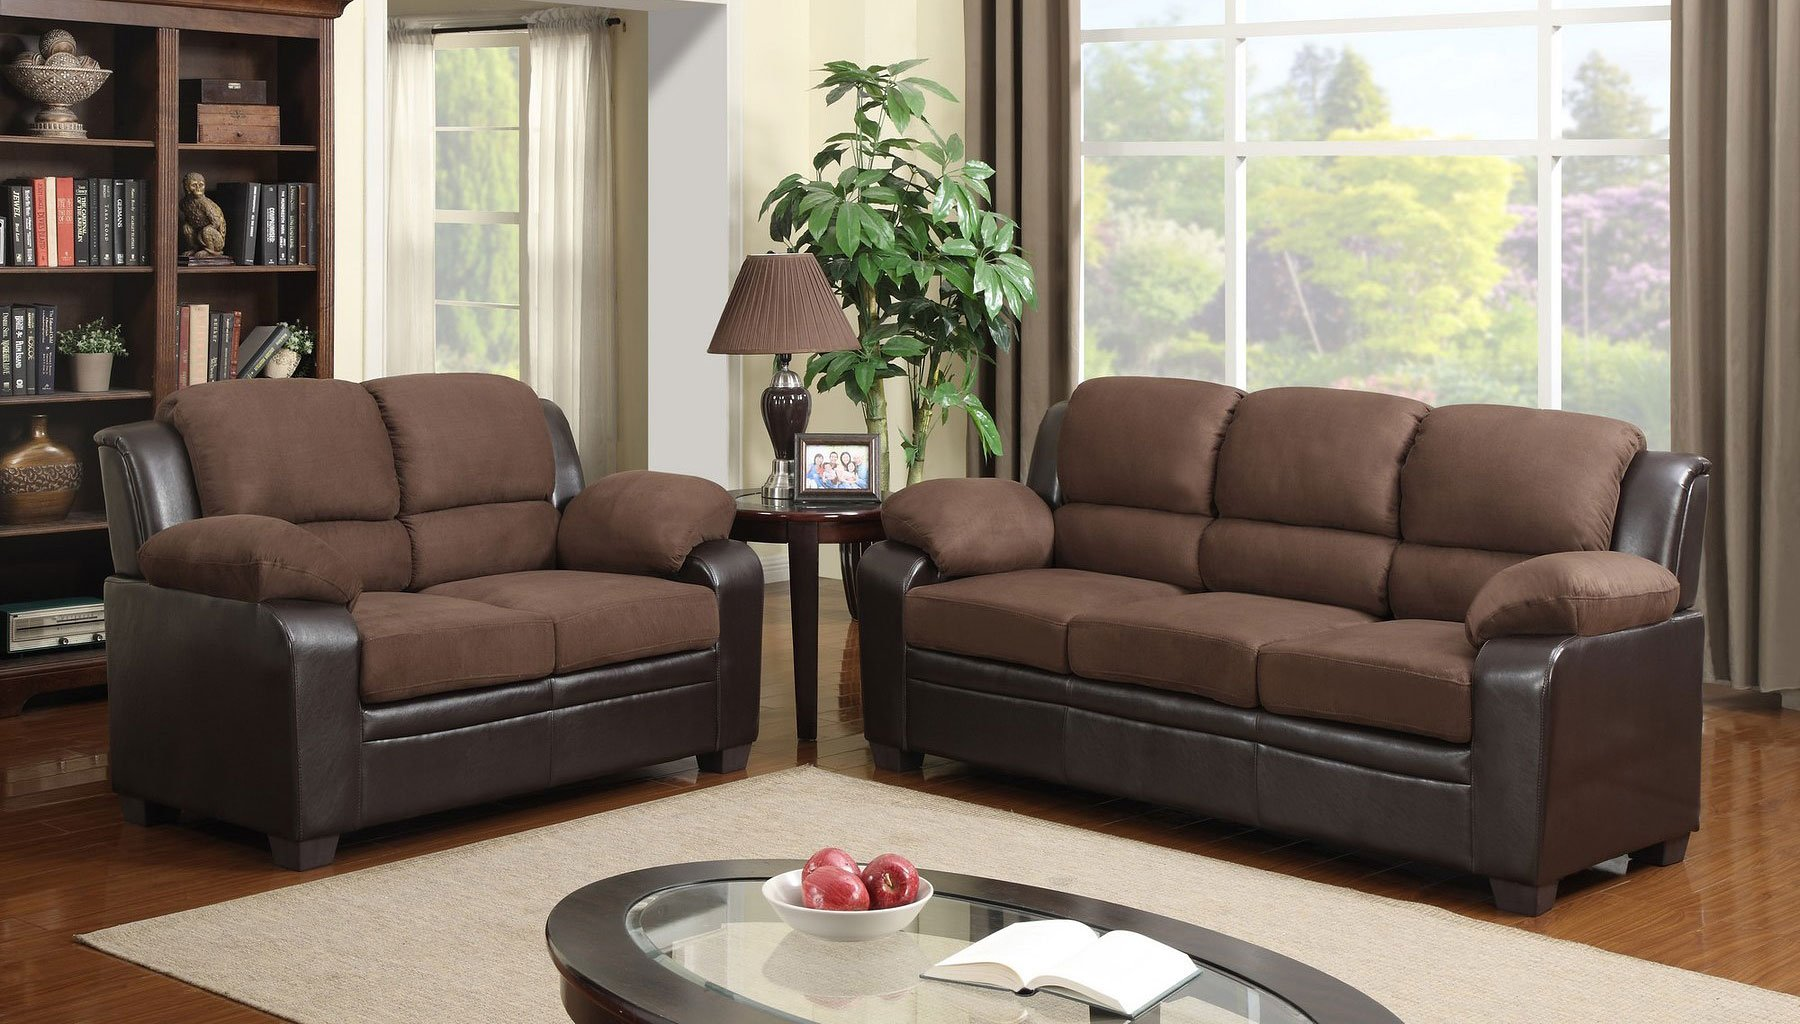 microfiber living room set u880018 living room set microfiber and pvc living room 12436